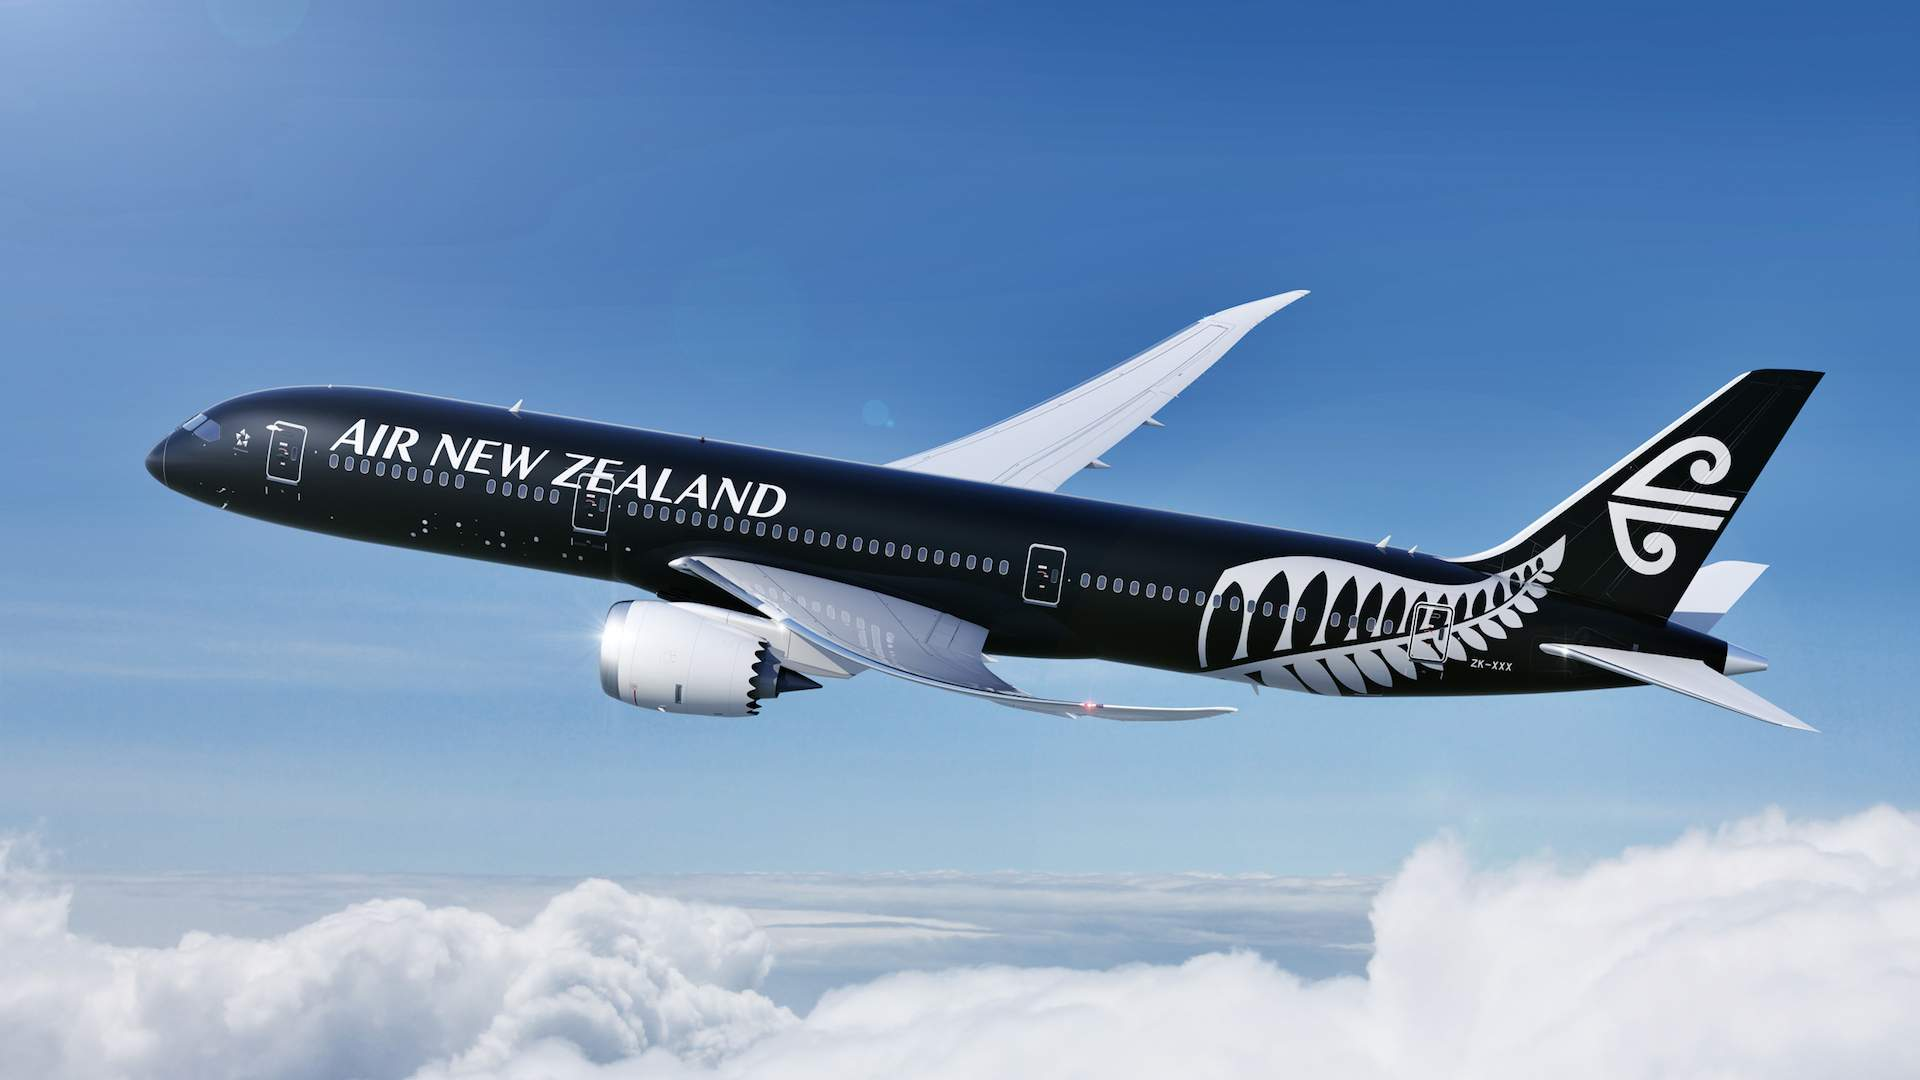 Air New Zealand Has Launched a Series of Instructional Inflight Video Workouts